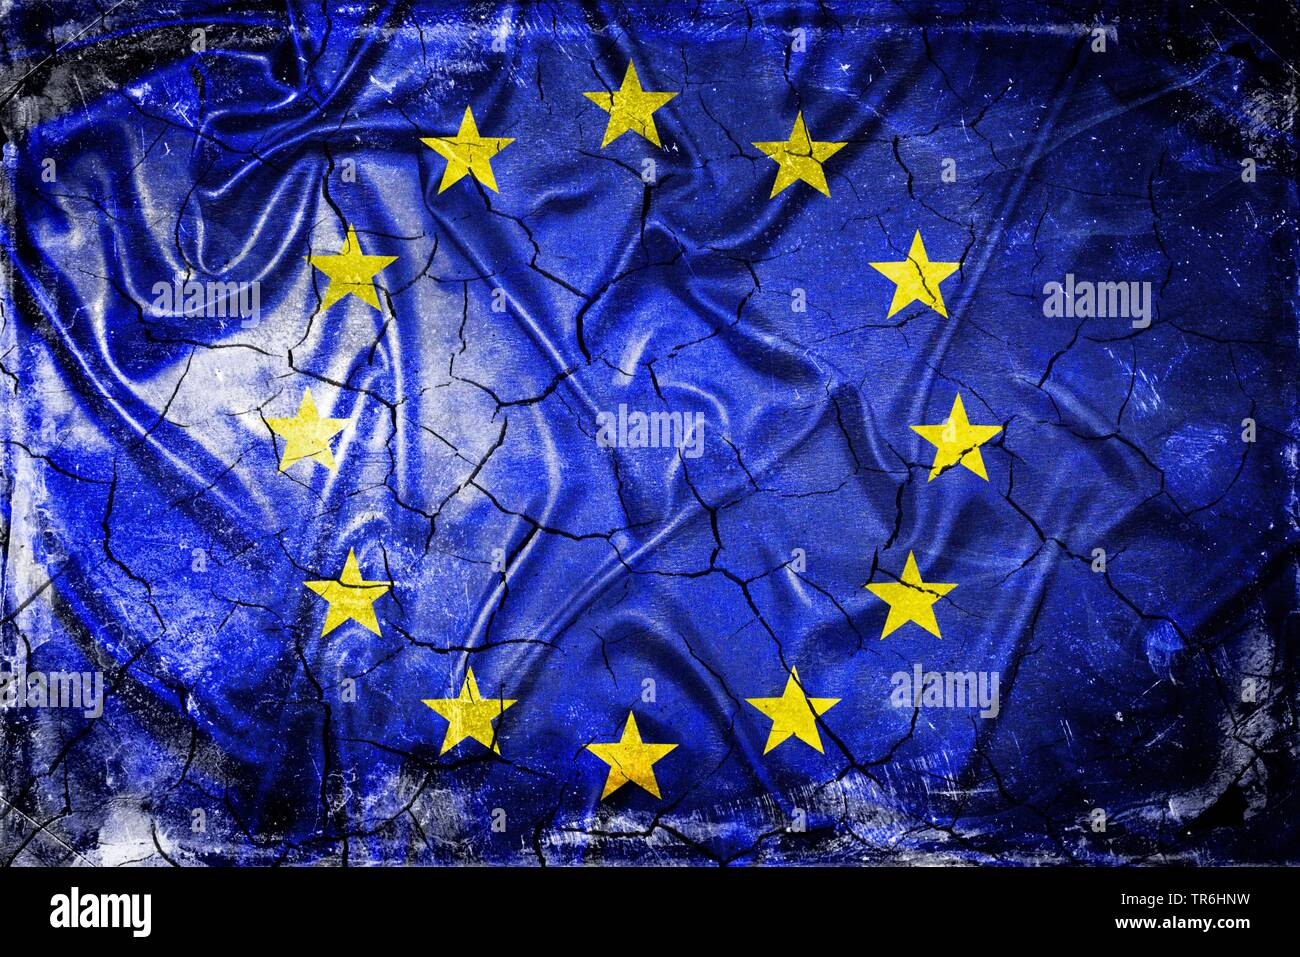 Europa-Fahne mit Rissen, Symbolfoto Europa nach dem Brexit-Votum, Europa | flag of the European Community with cracks, symbol picture Brexit, Europe | - Stock Image